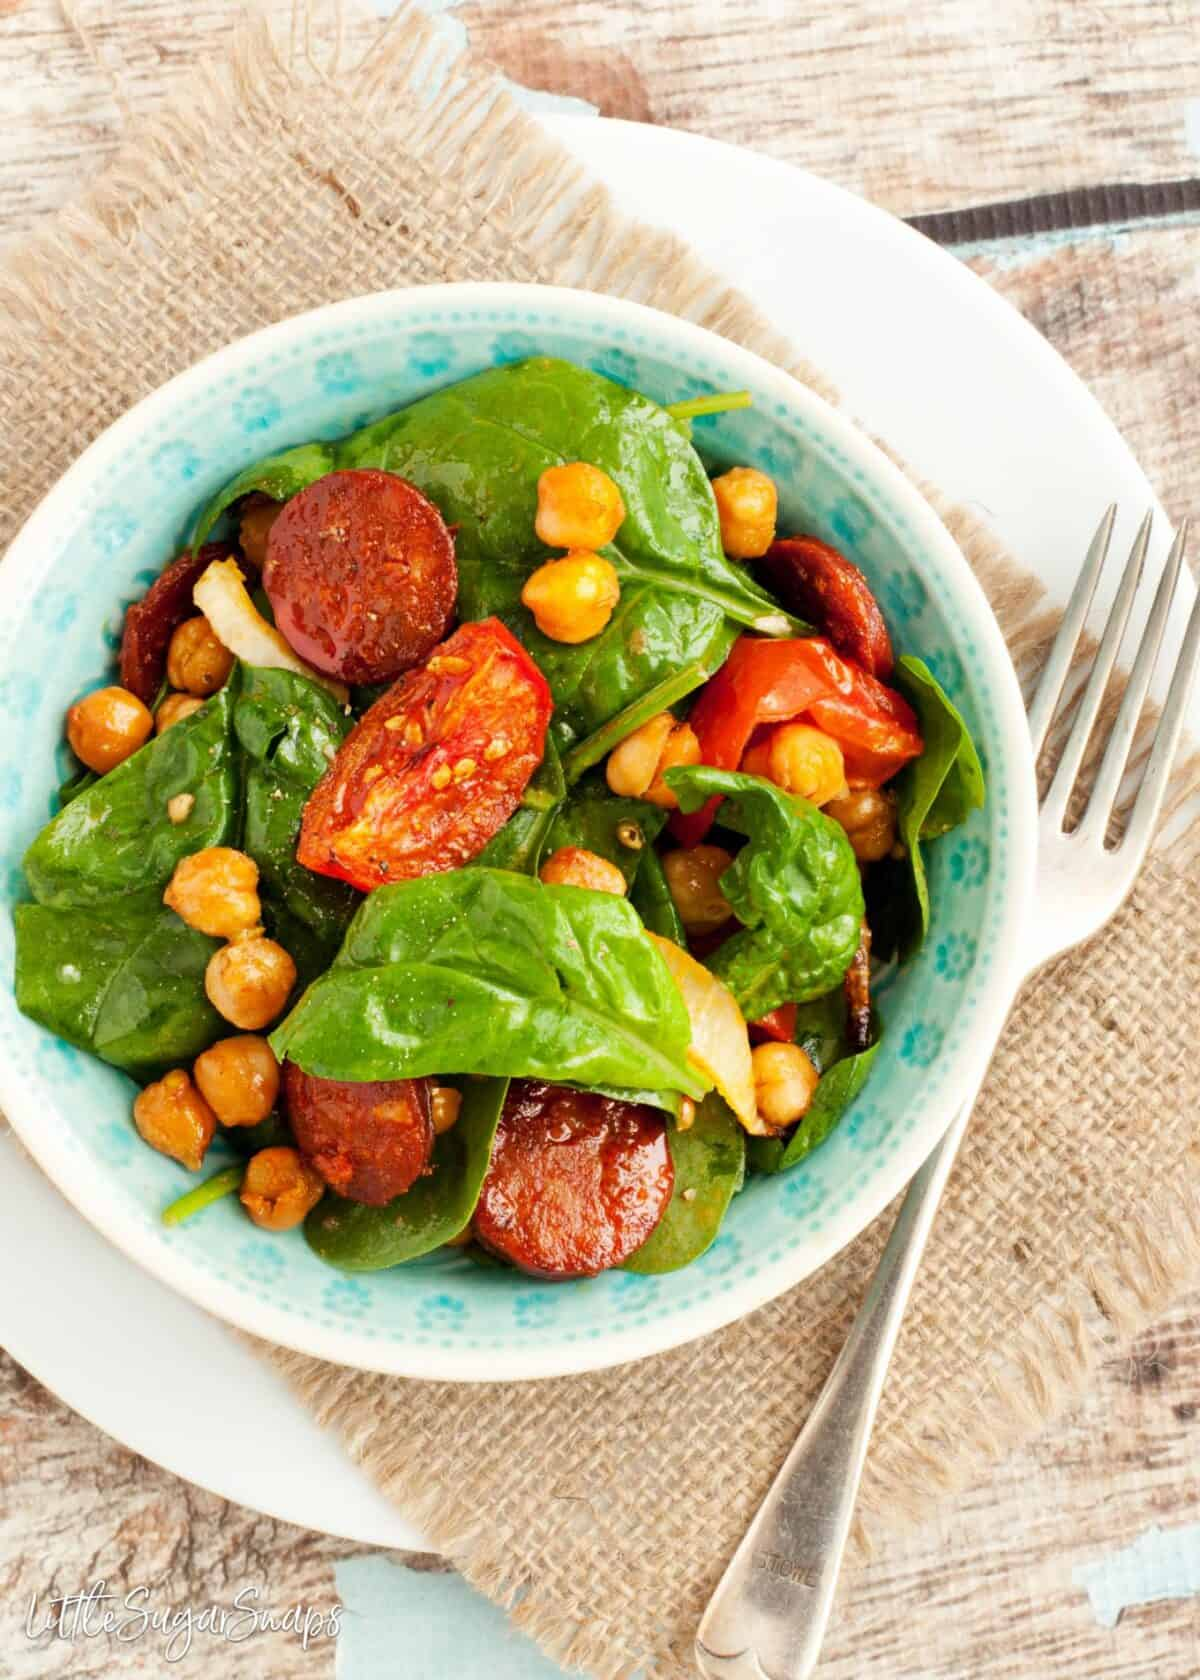 Roasted chickpea salad with spinach, tomato and chorizo